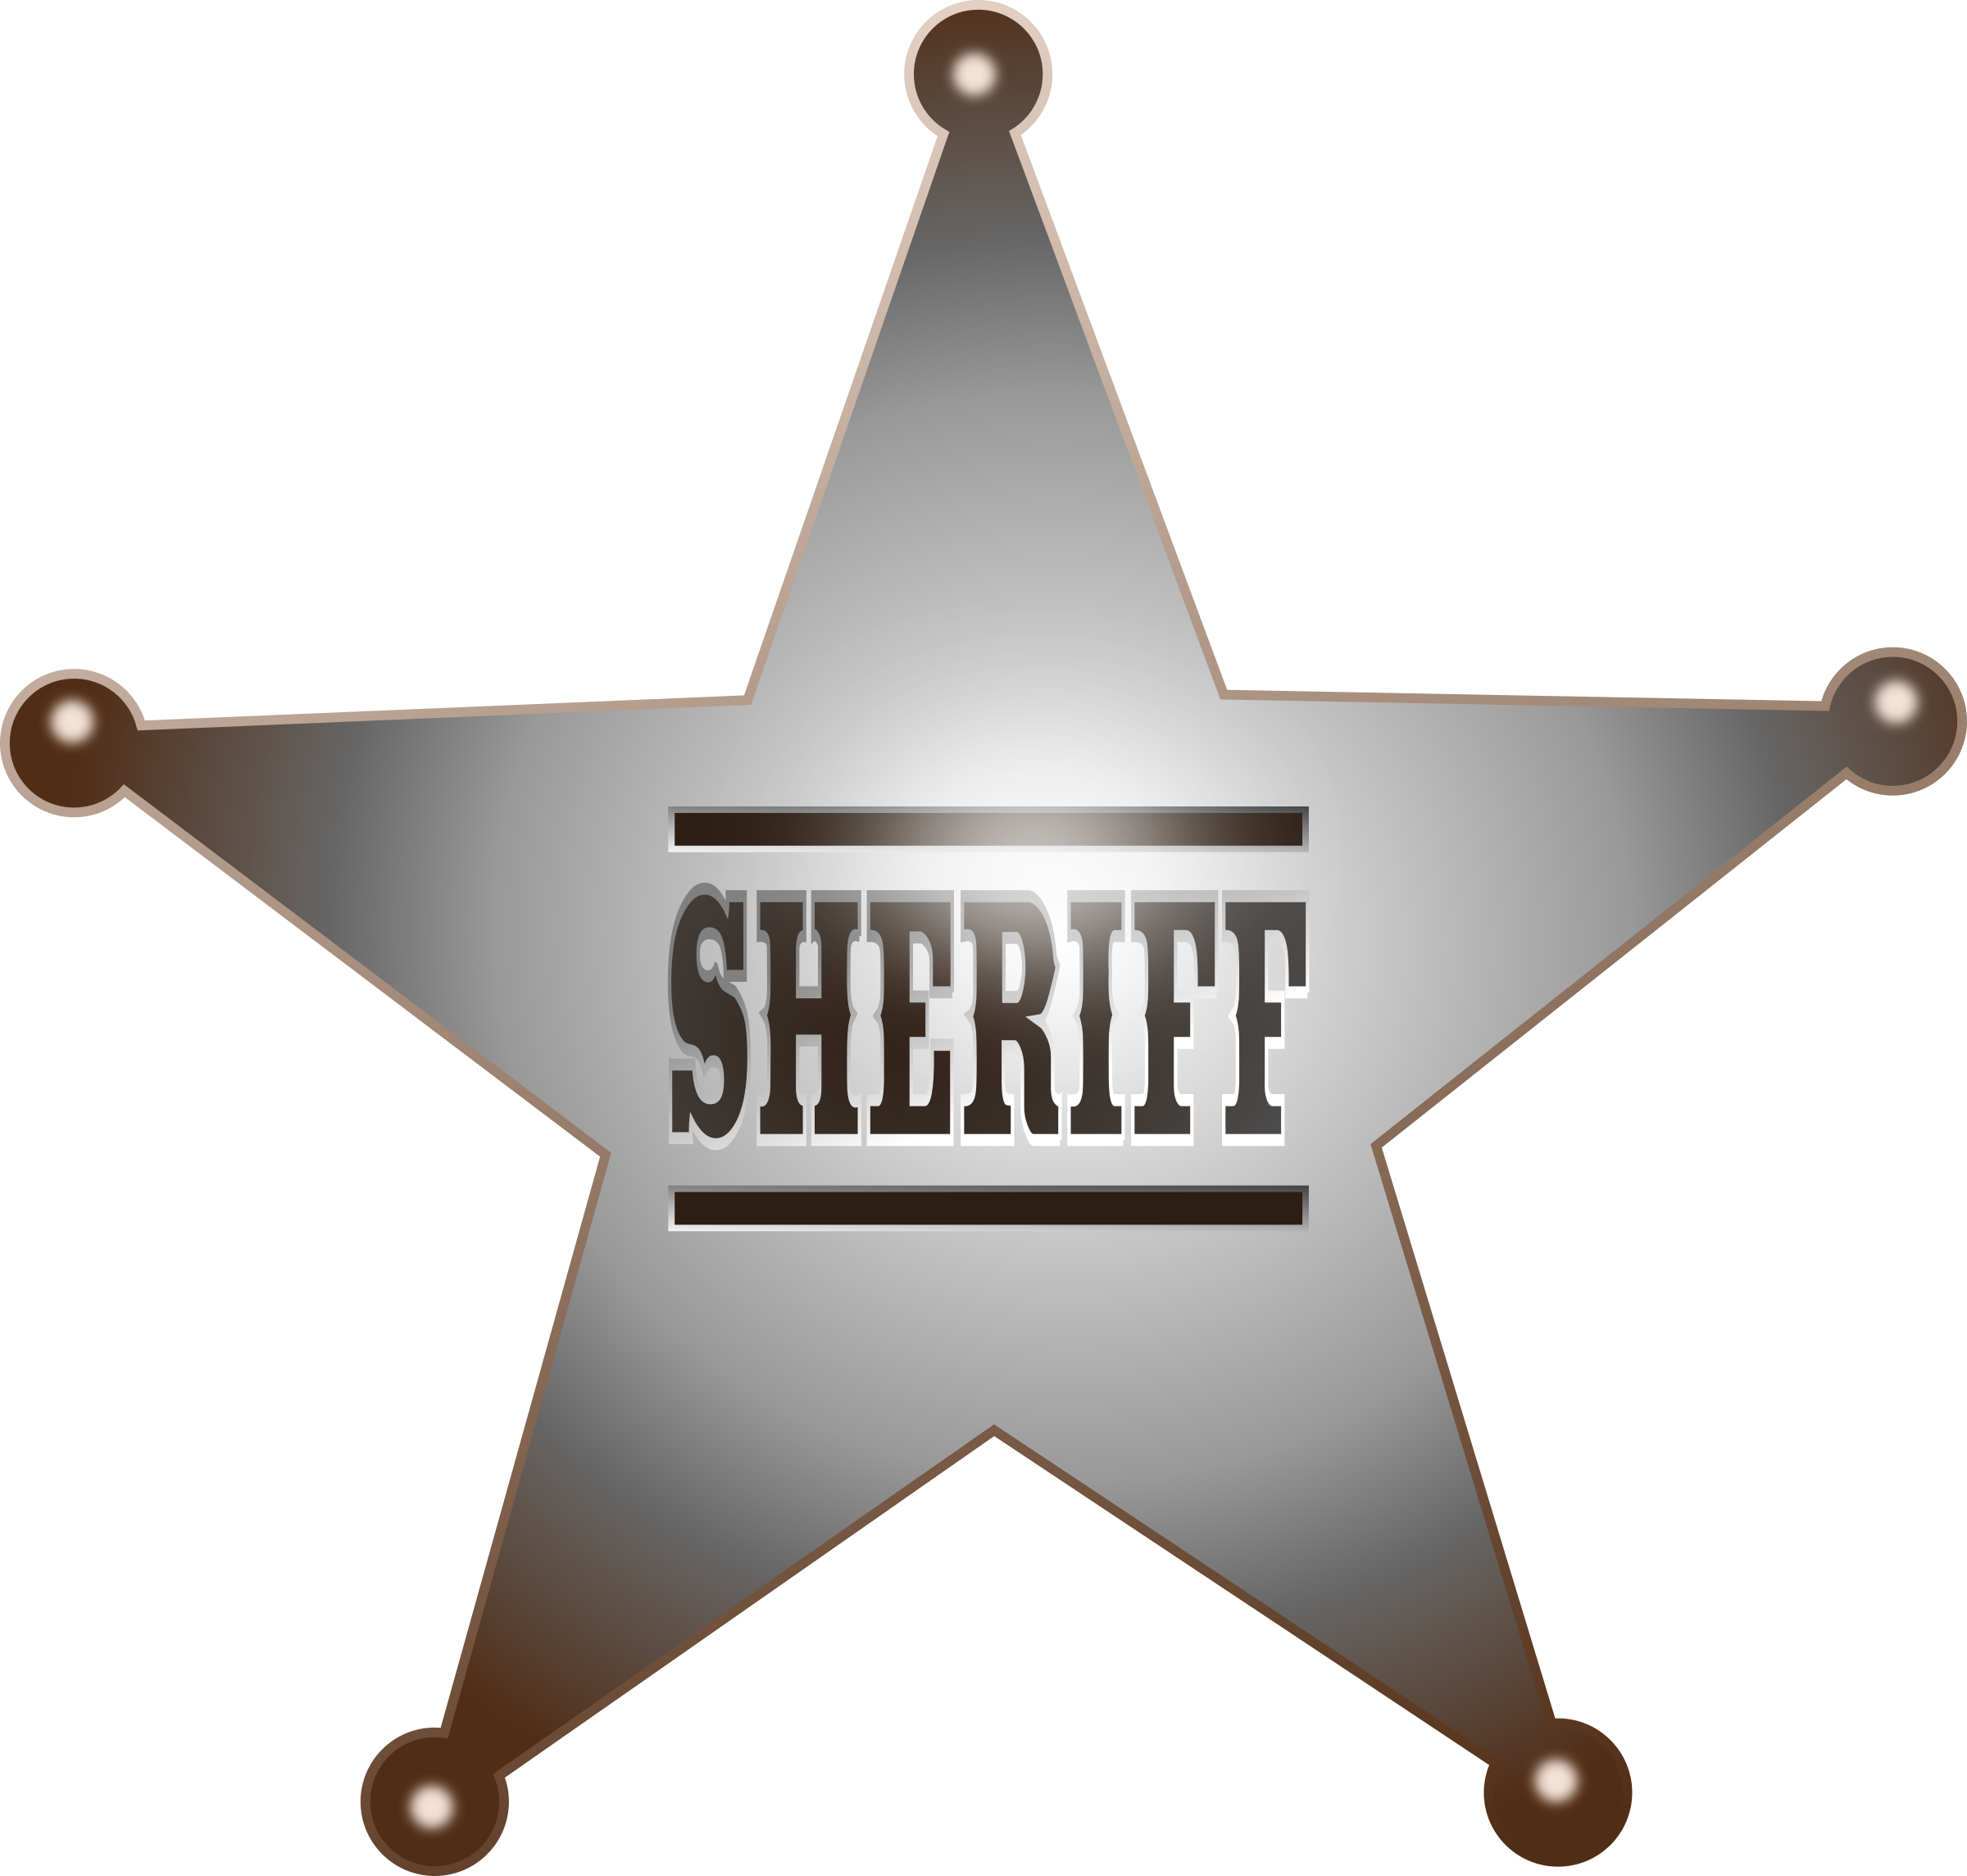 Svg star sheriff. Icons png free and